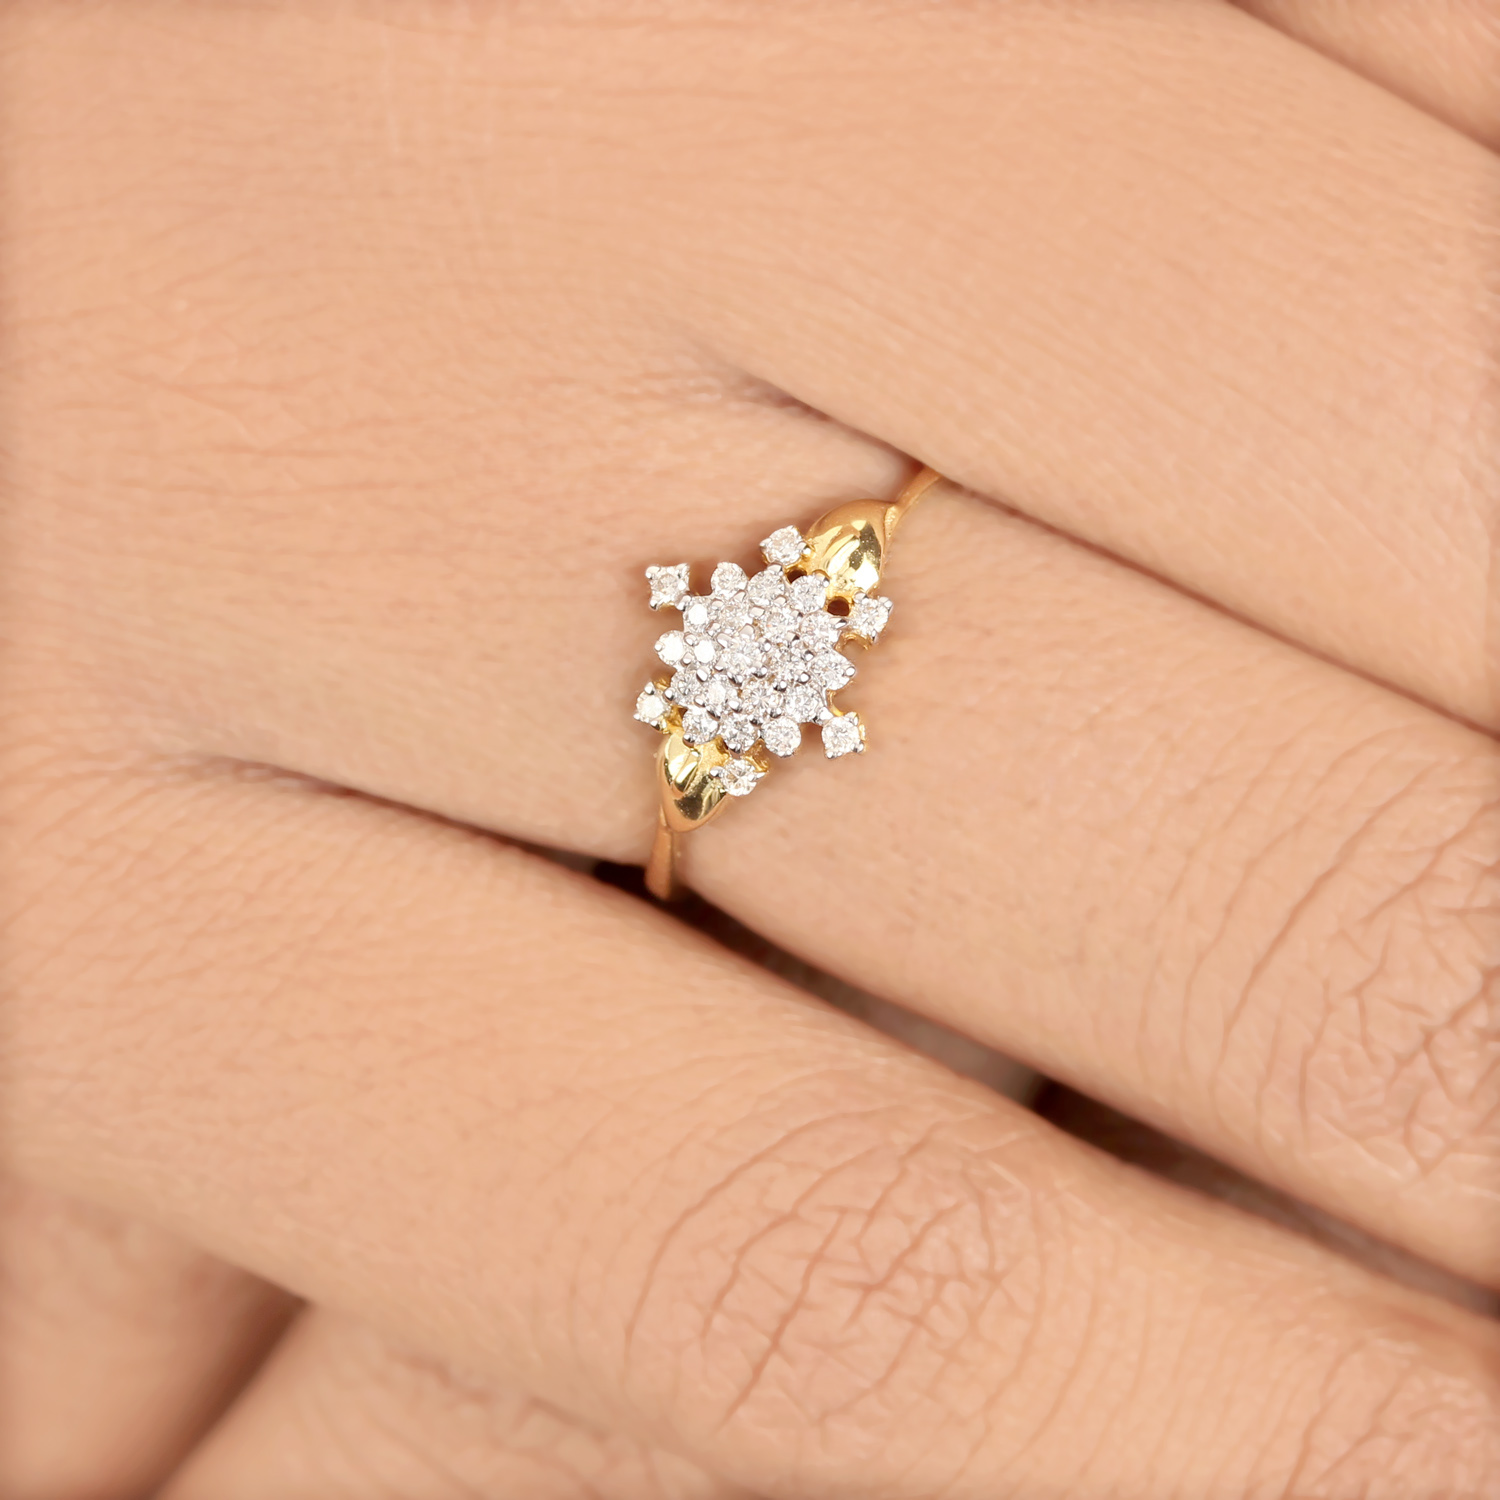 Ring - Gold With Diamond